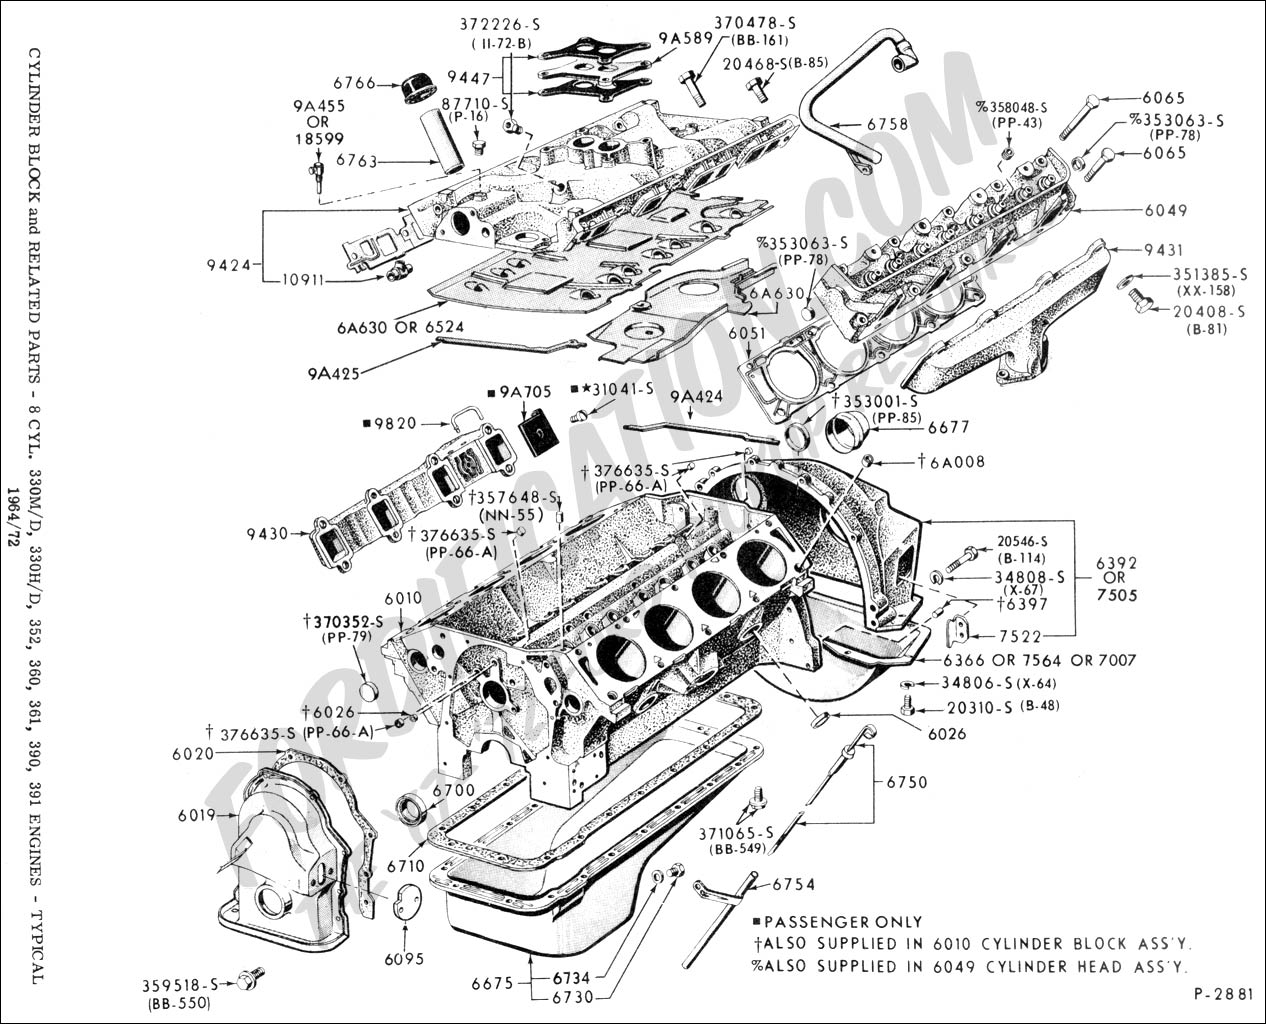 Aprilia Ersatzteile Neu Motor Motor Rs 125 1621 as well Honda Ruckus Engine Diagram also Tomberlin Atv Parts moreover Schematics e moreover 410531322265039102. on gy6 engine exploded diagram